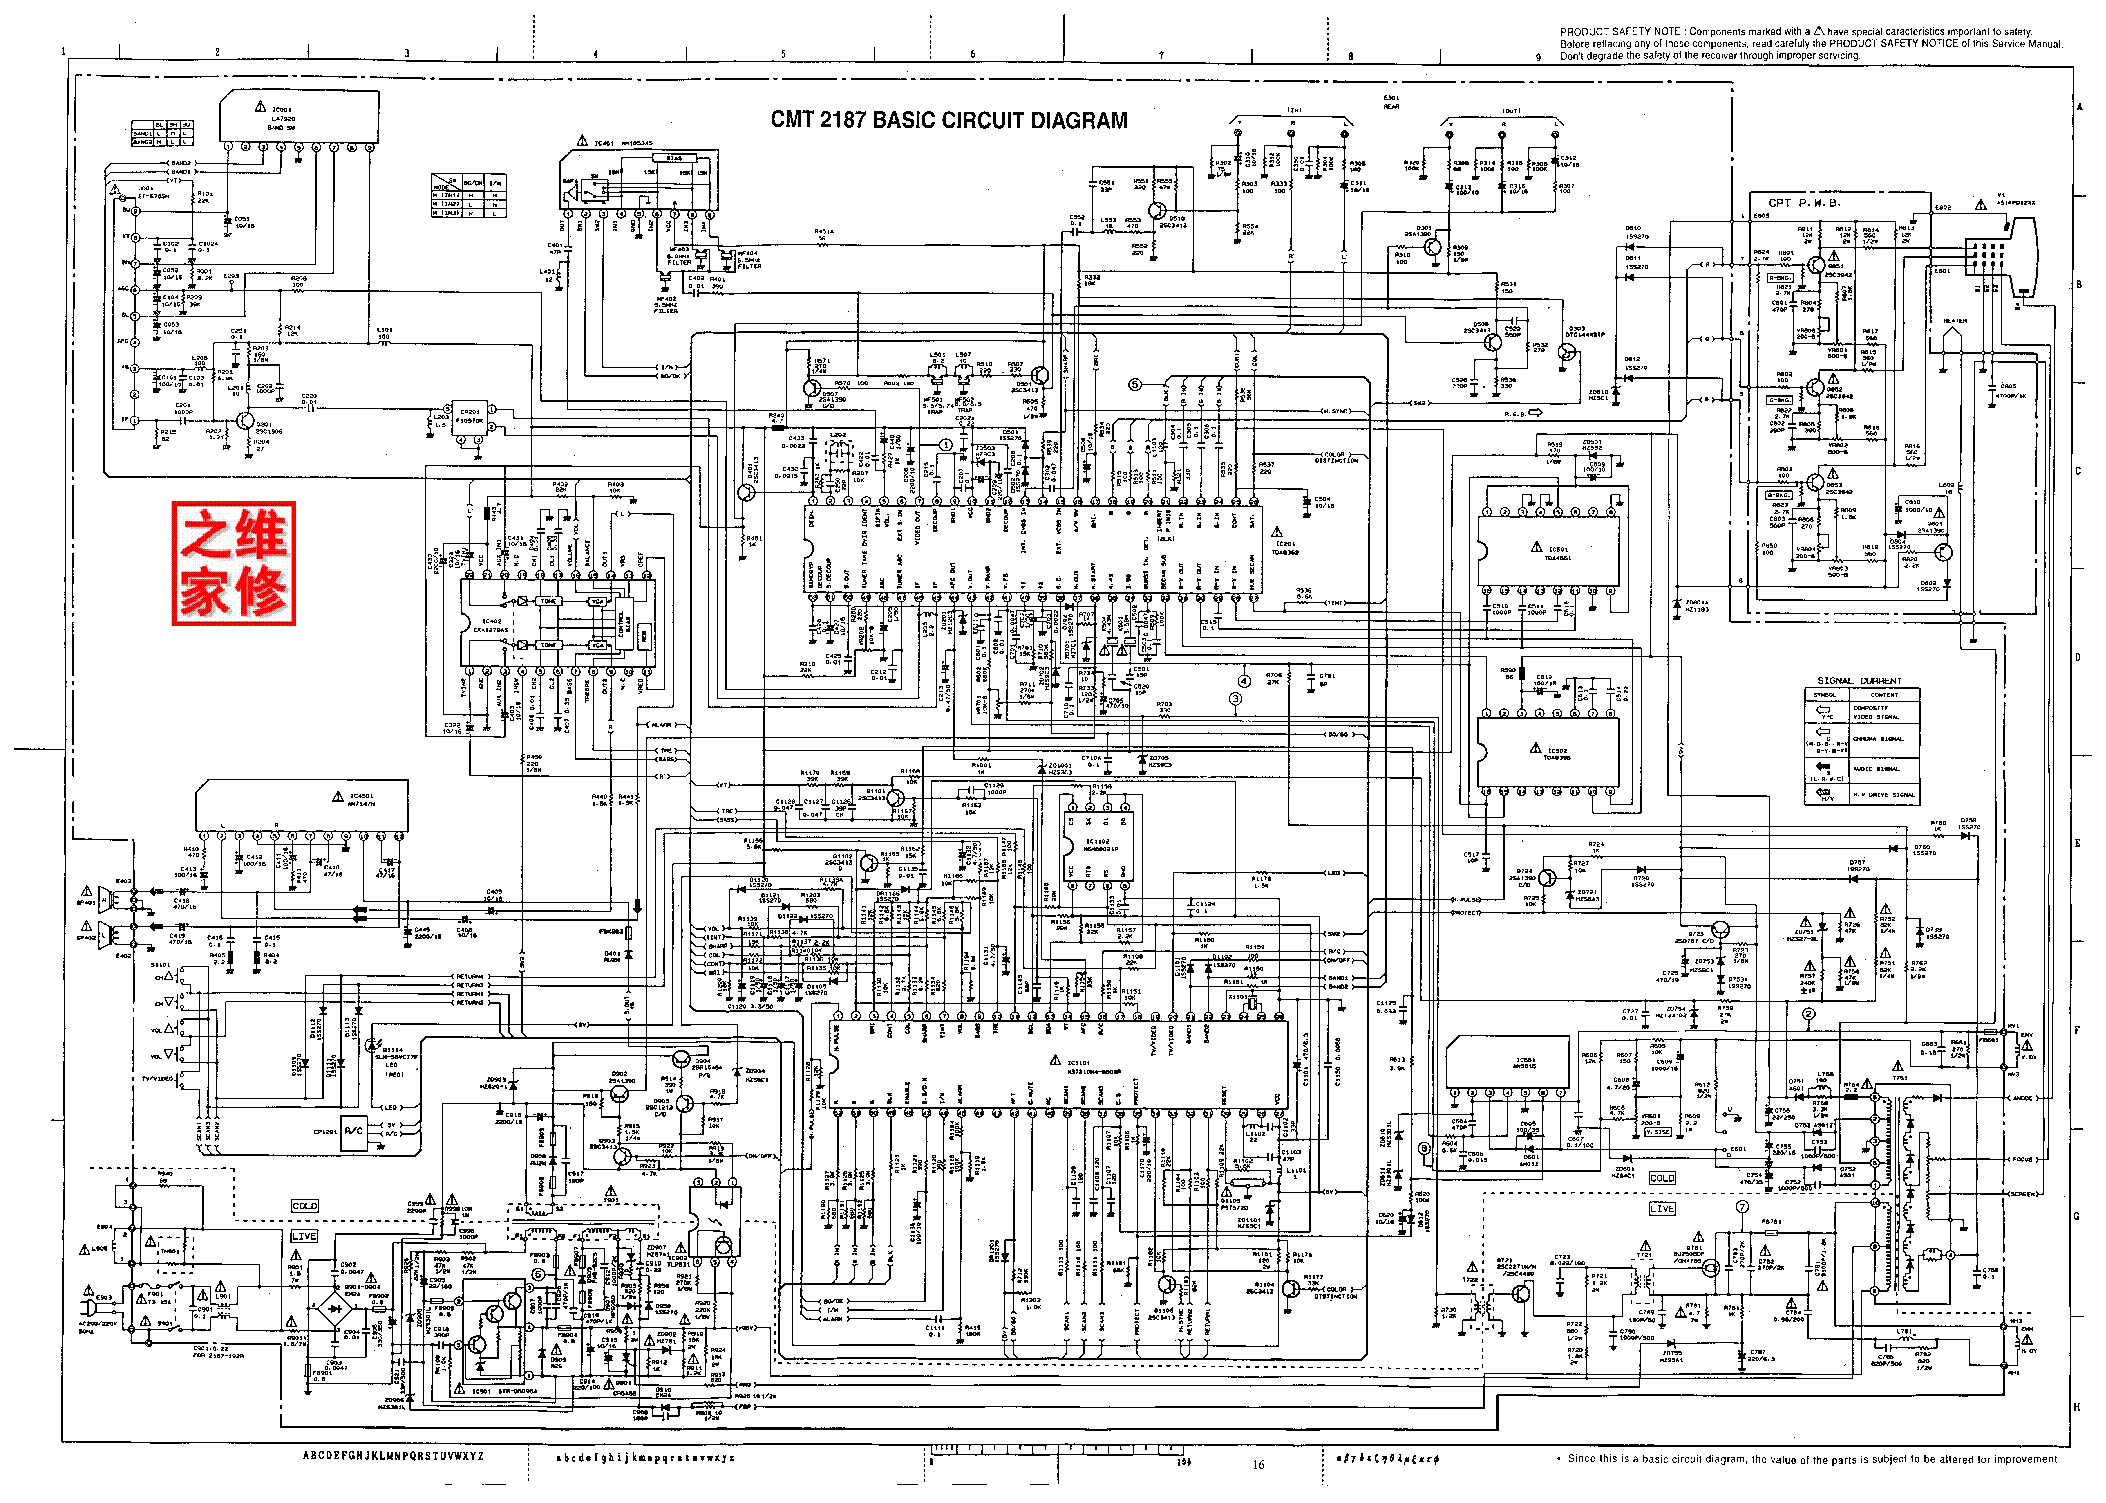 Awesome Circuit Diagram Wiring Library Wiring Cloud Ratagdienstapotheekhoekschewaardnl